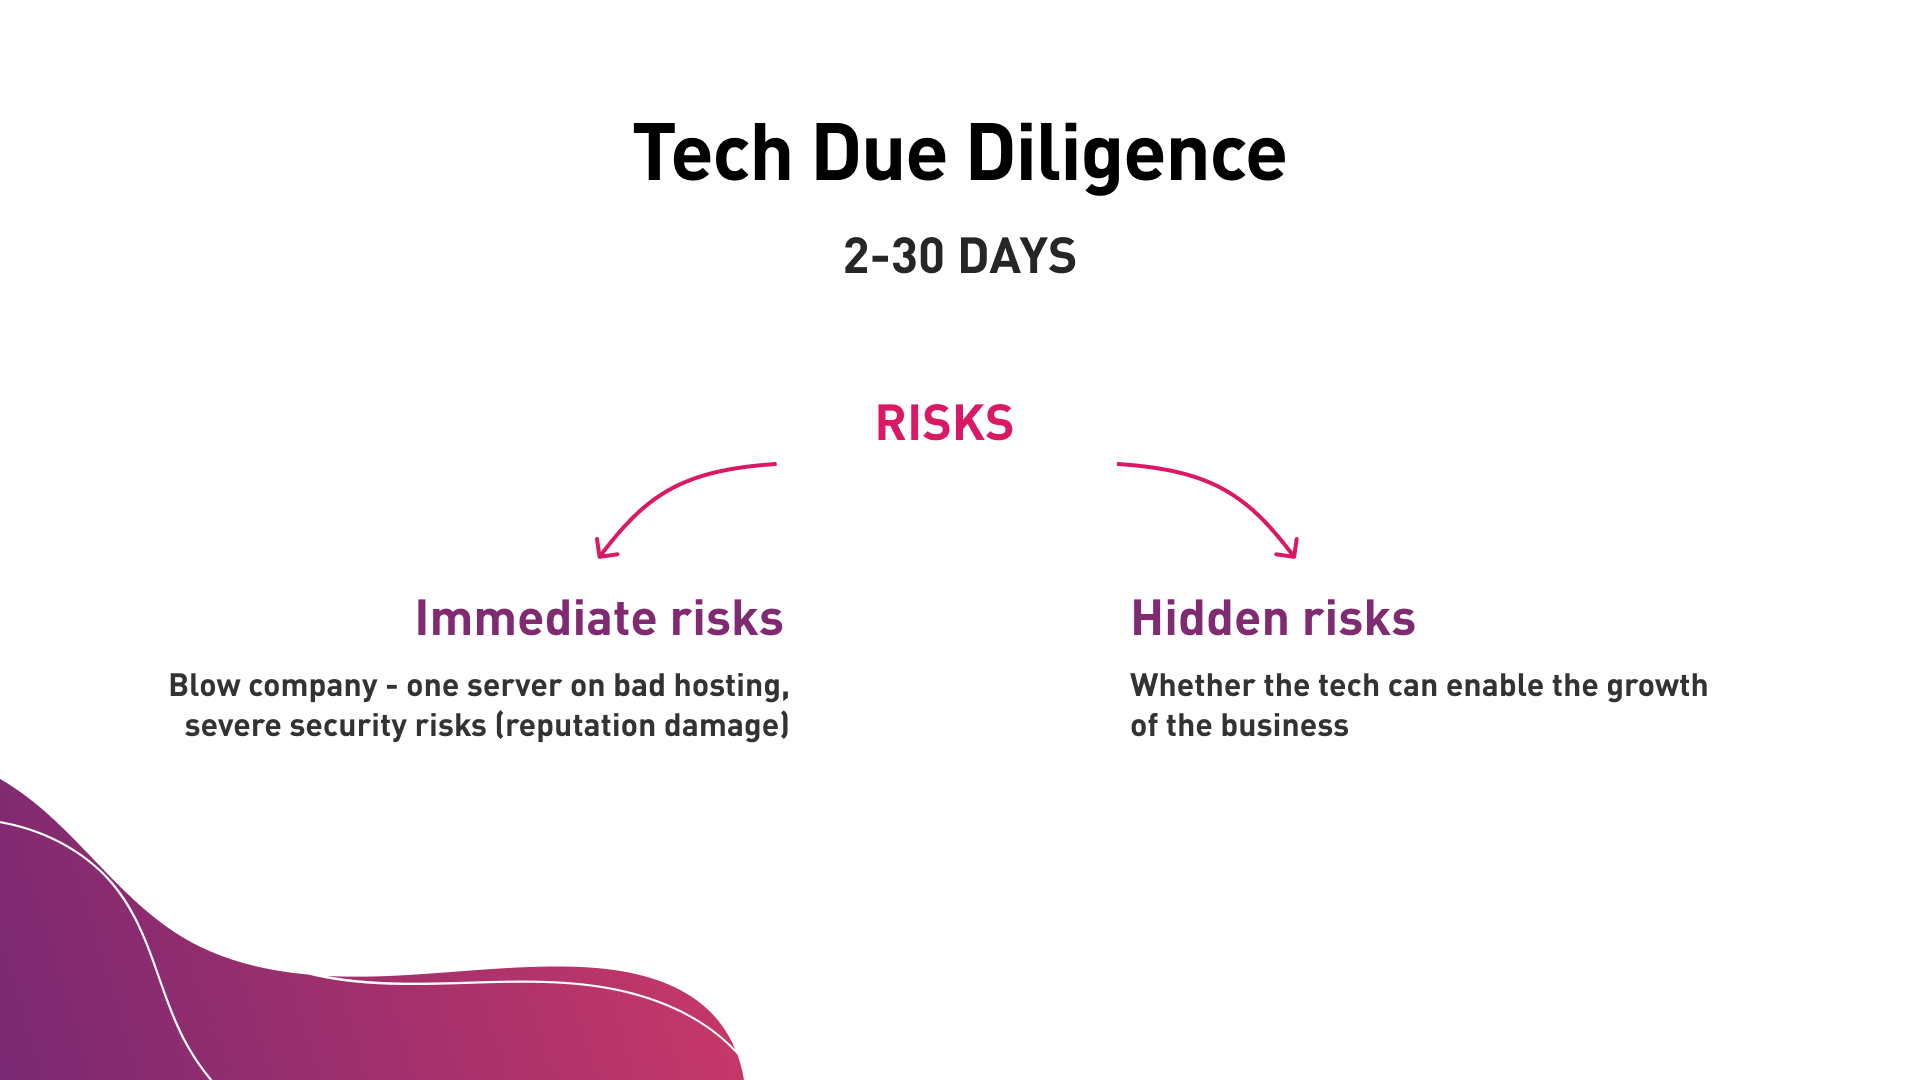 Tech Due Diligence